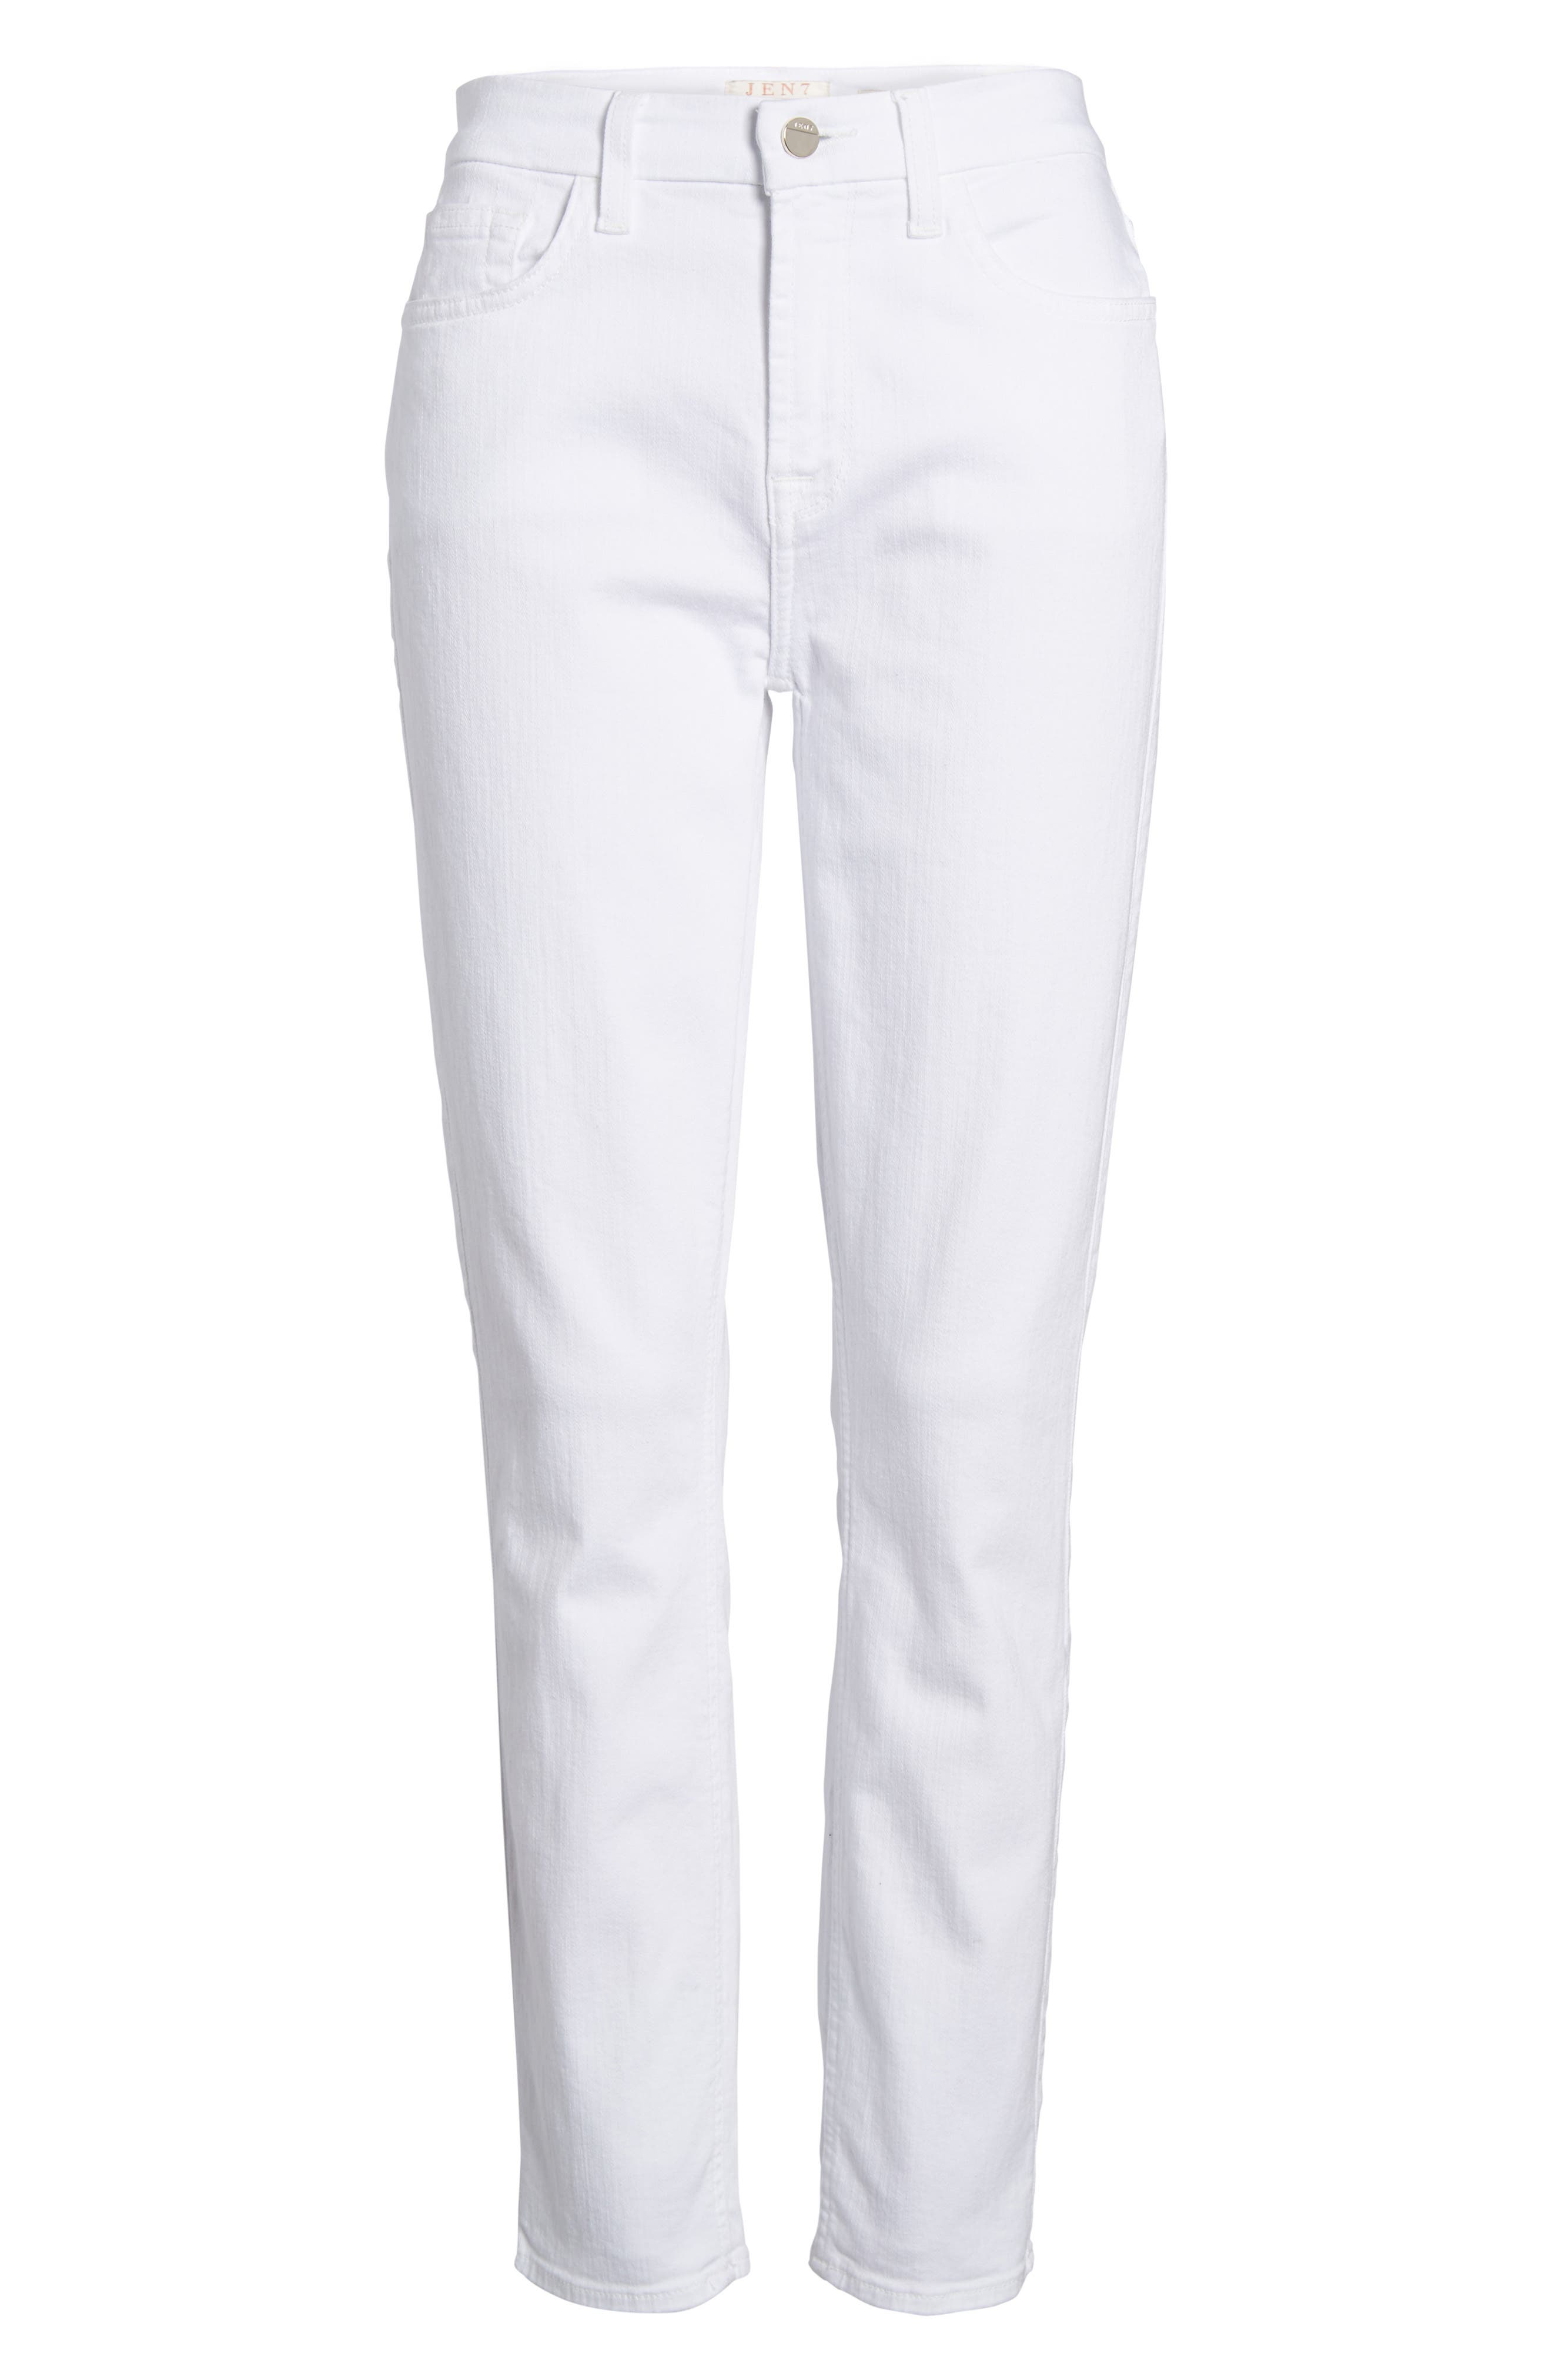 Ankle Skinny Jeans,                             Alternate thumbnail 6, color,                             WHITE FASION